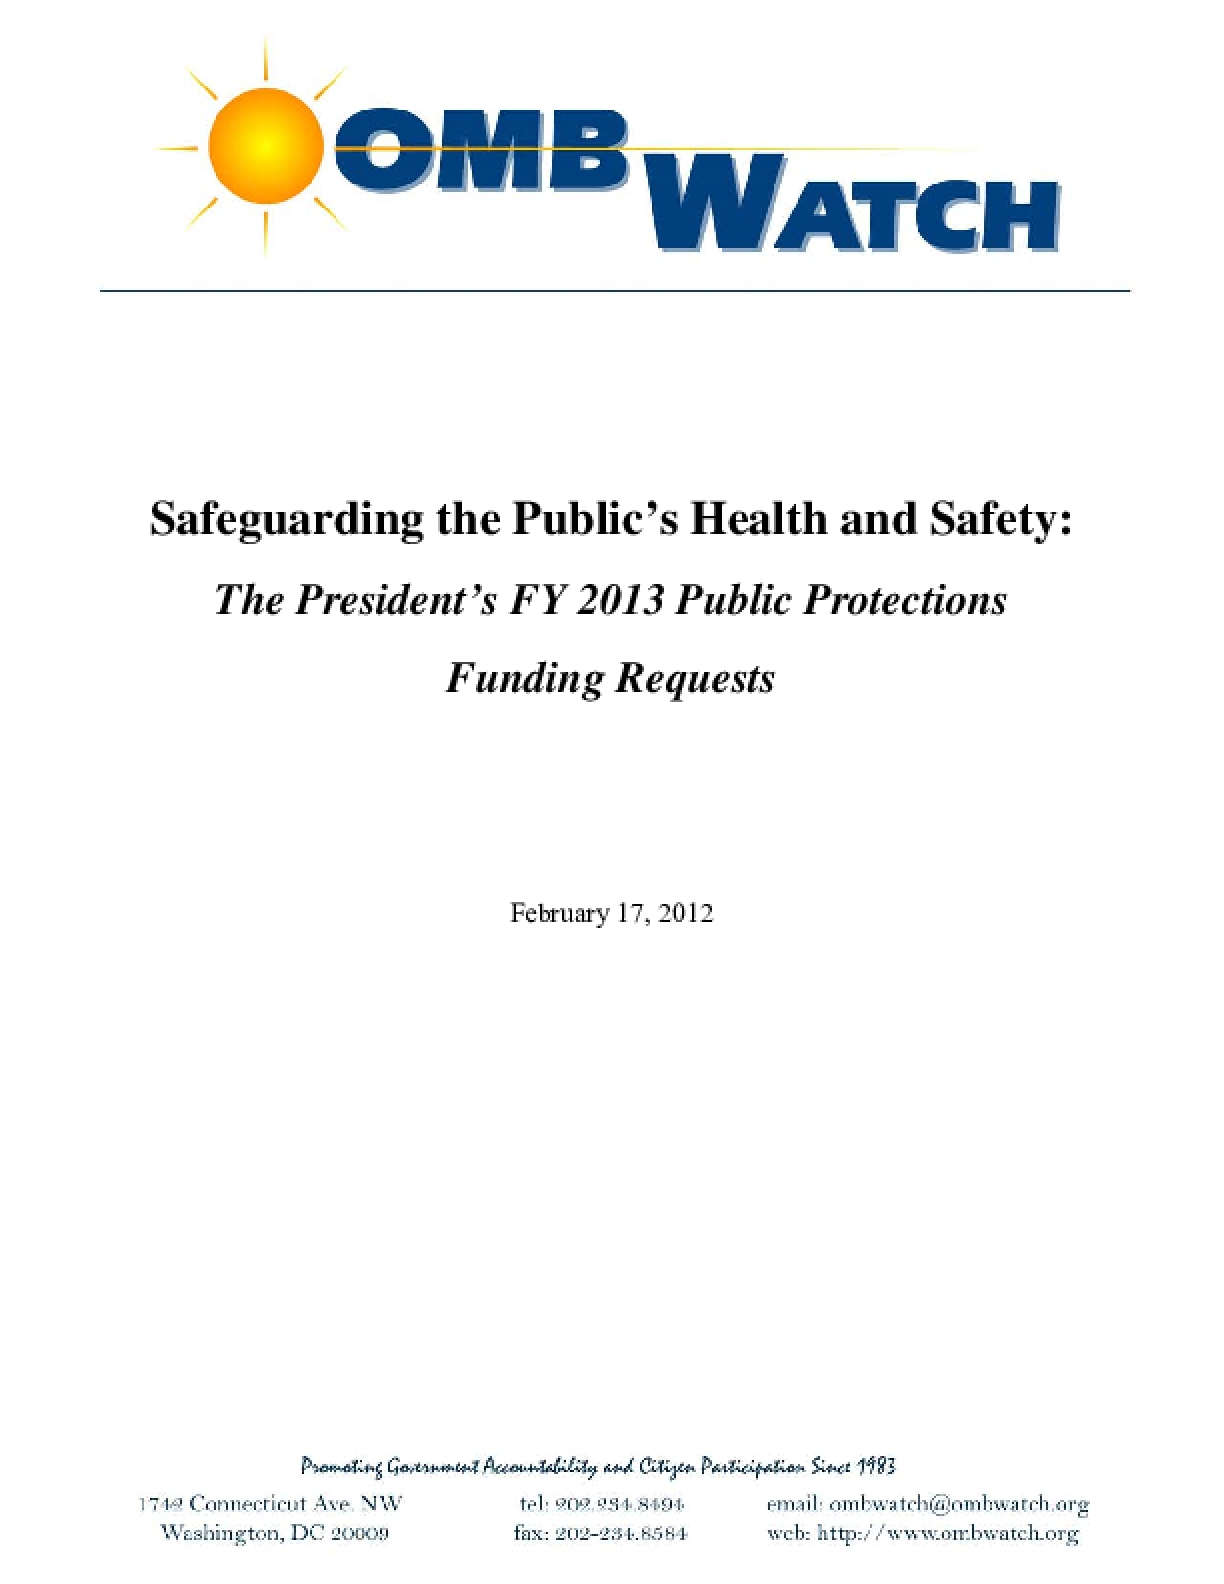 Safeguarding the Public's Health and Safety: The President's FY 2013 Public Protections Funding Requests